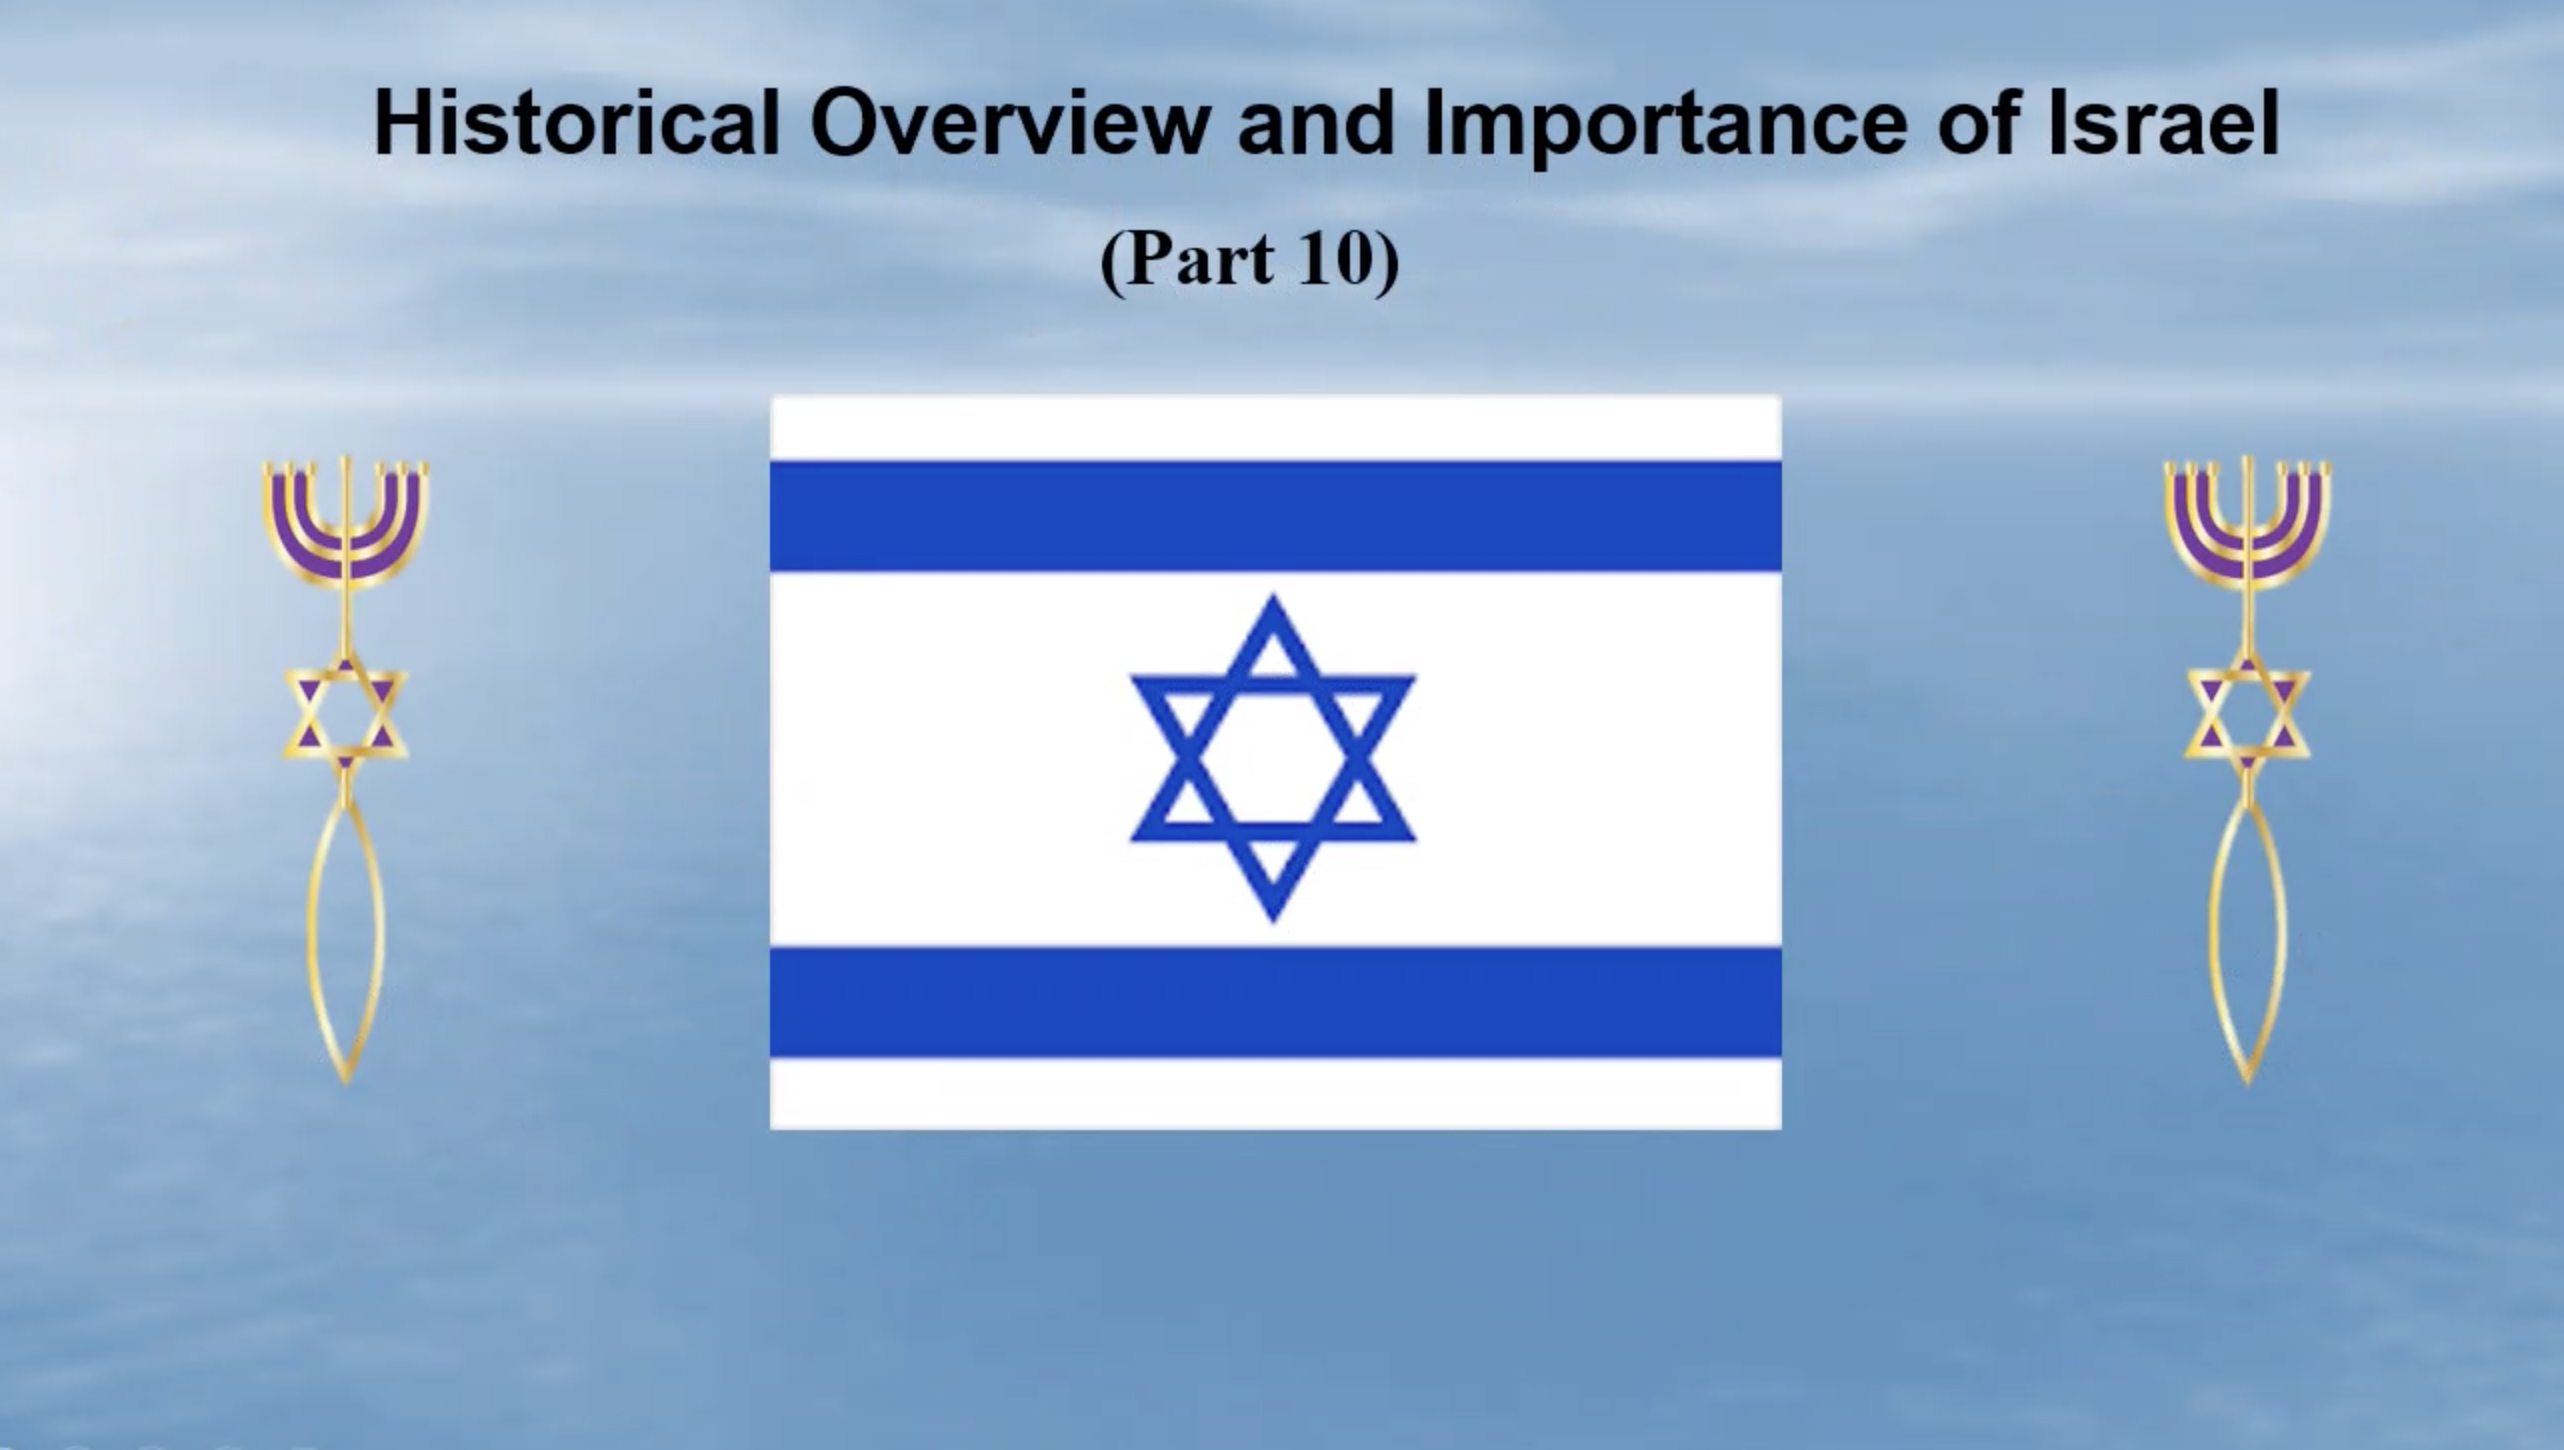 History and Importance of Nation of Israel (Pt 10)